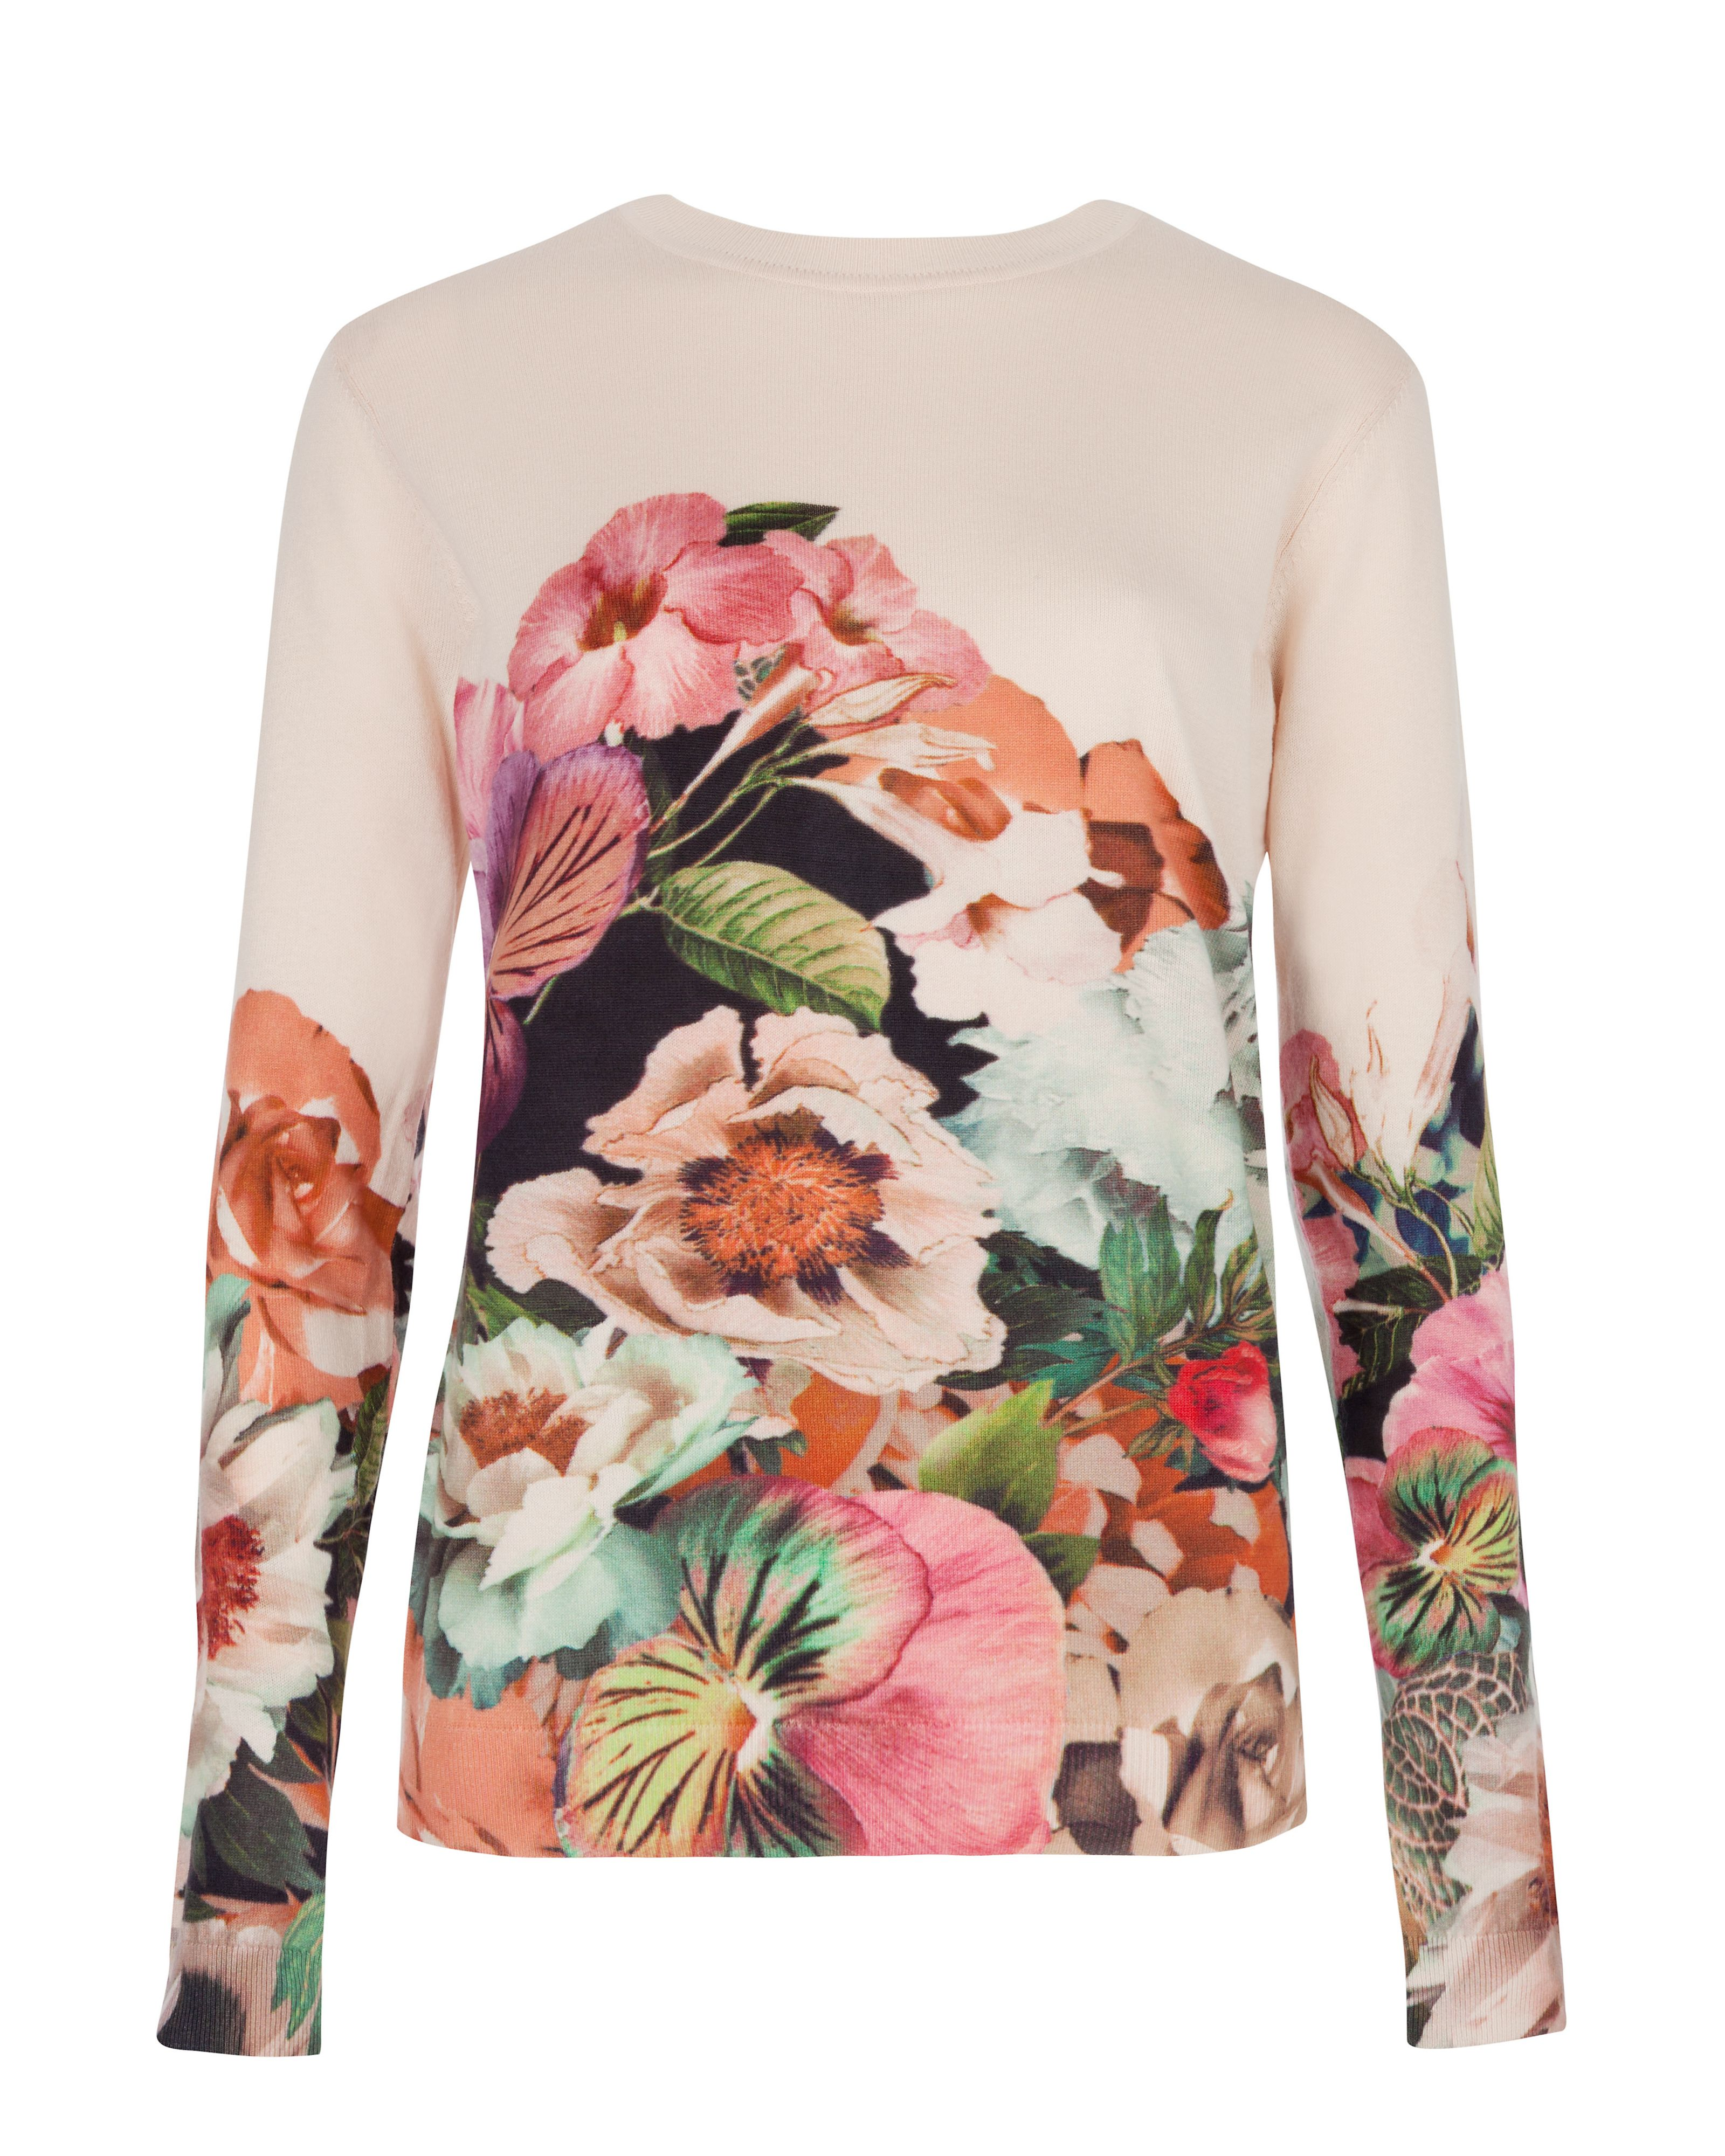 Ivorry tangled floral print sweater